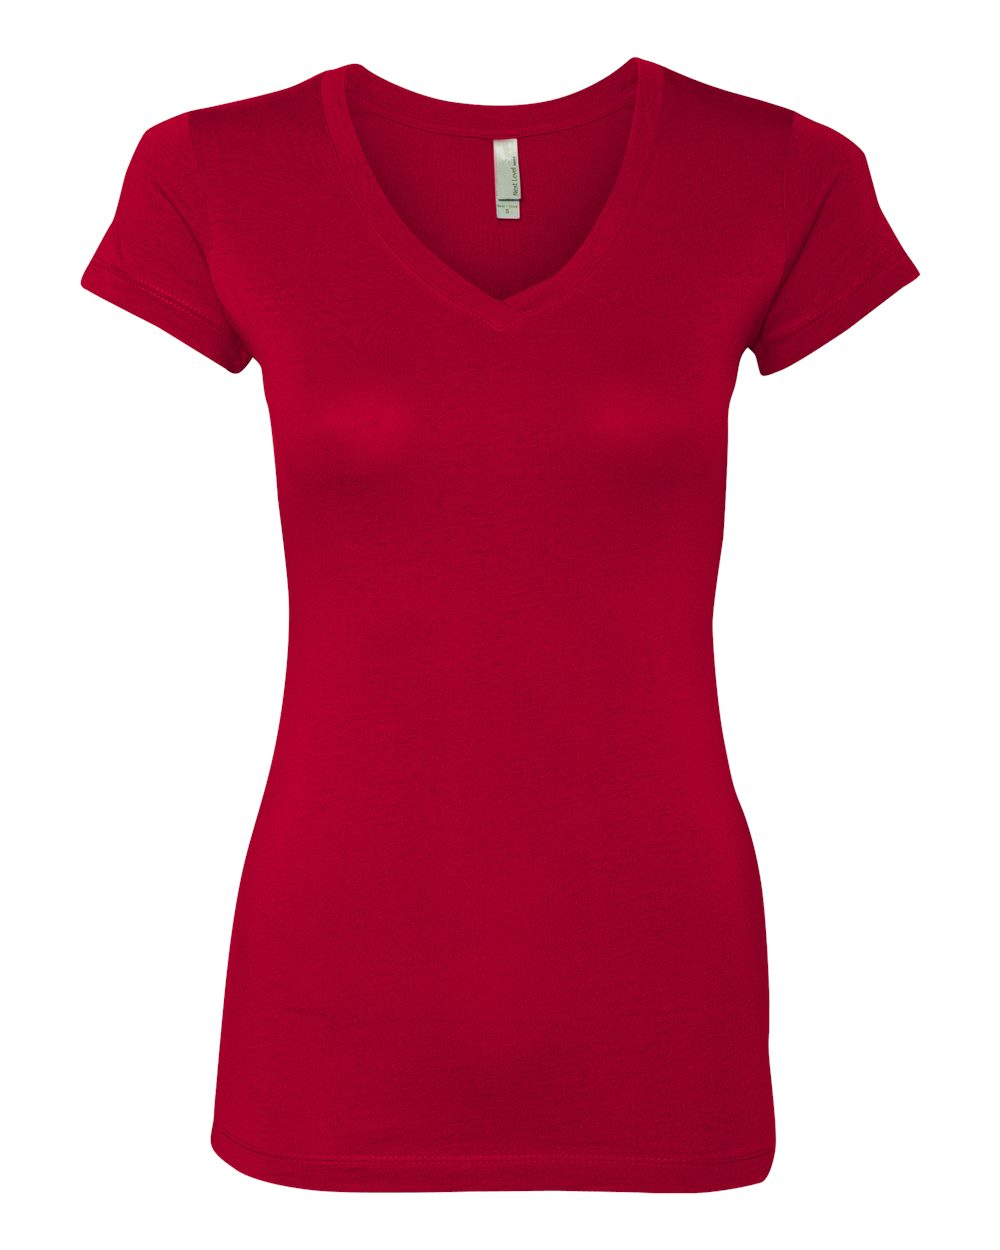 Next_Level_3400L_Red_Front_High.jpg